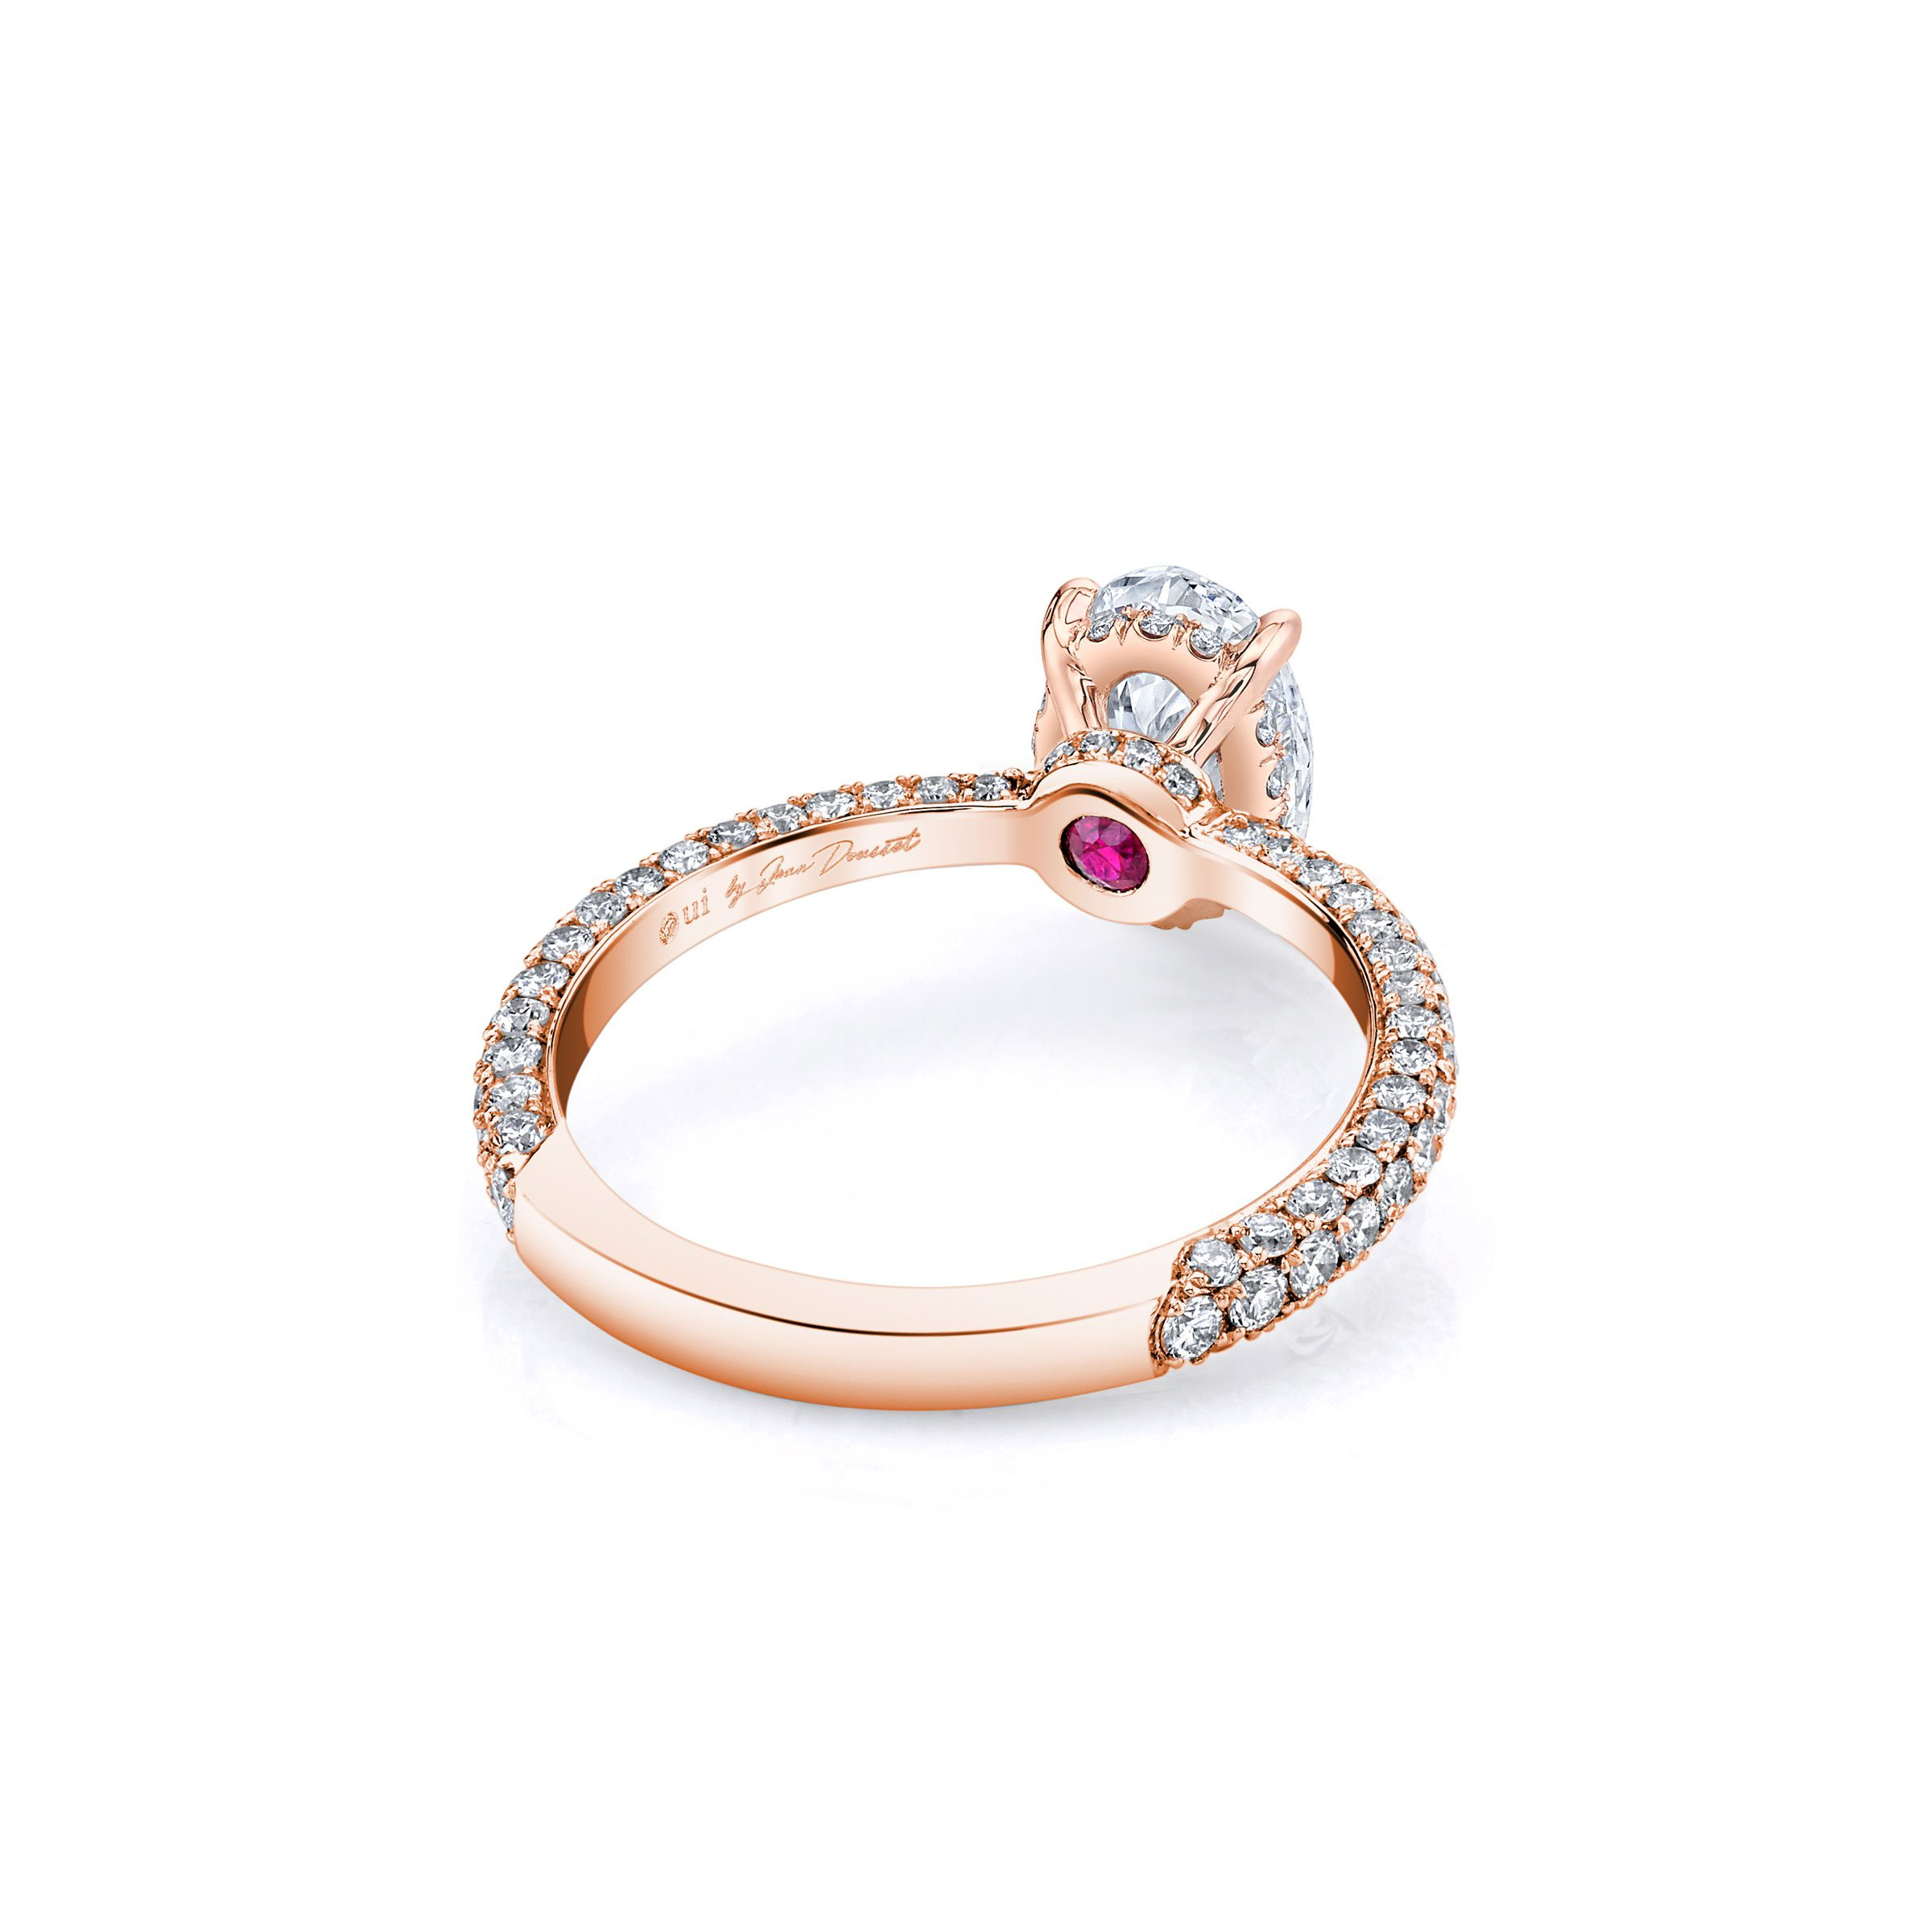 Jacqueline Solitaire Oval Cut Lab Diamond Engagement Ring with three row pavé 18k rose gold band. Ring side view.